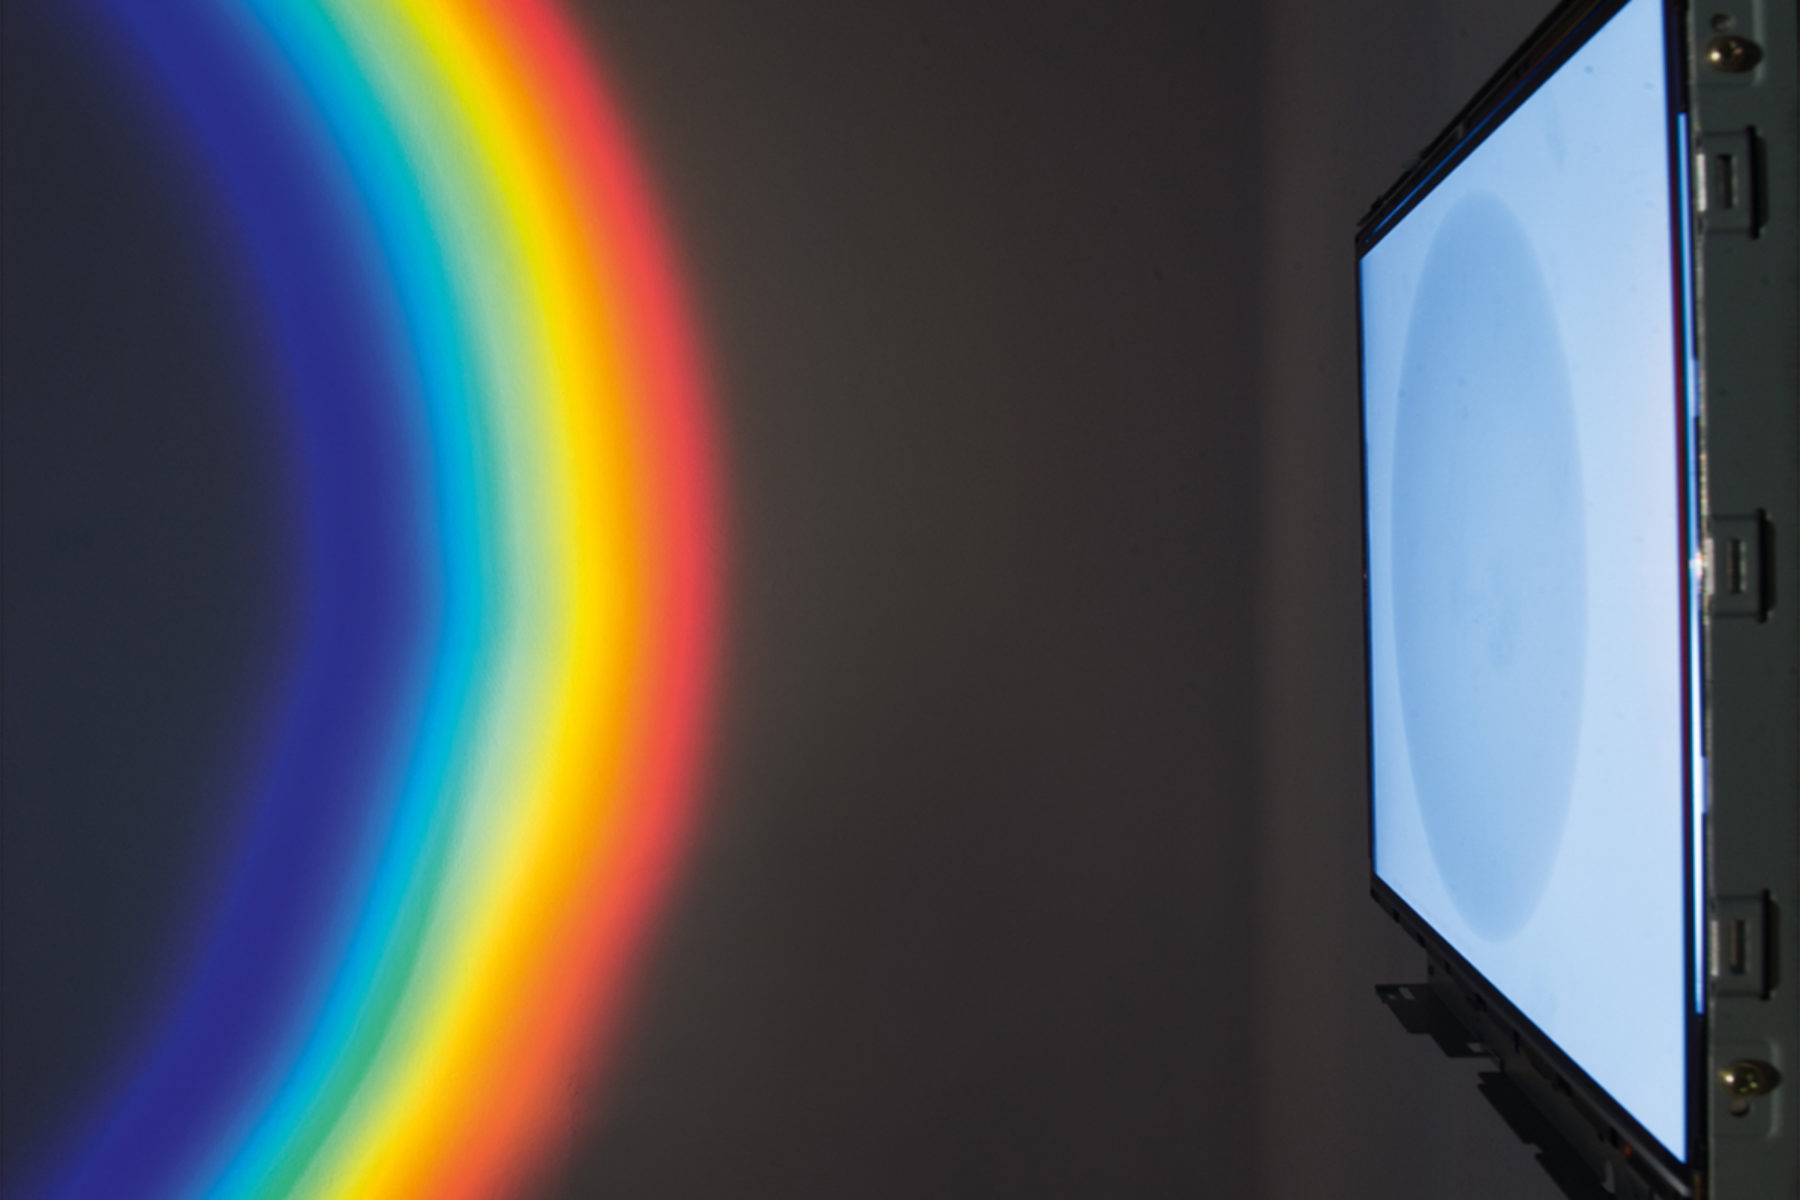 Richard Loskot, Color System, 2012, light, lcd monitor, cristal prisma, computer, polarized films, installation, i